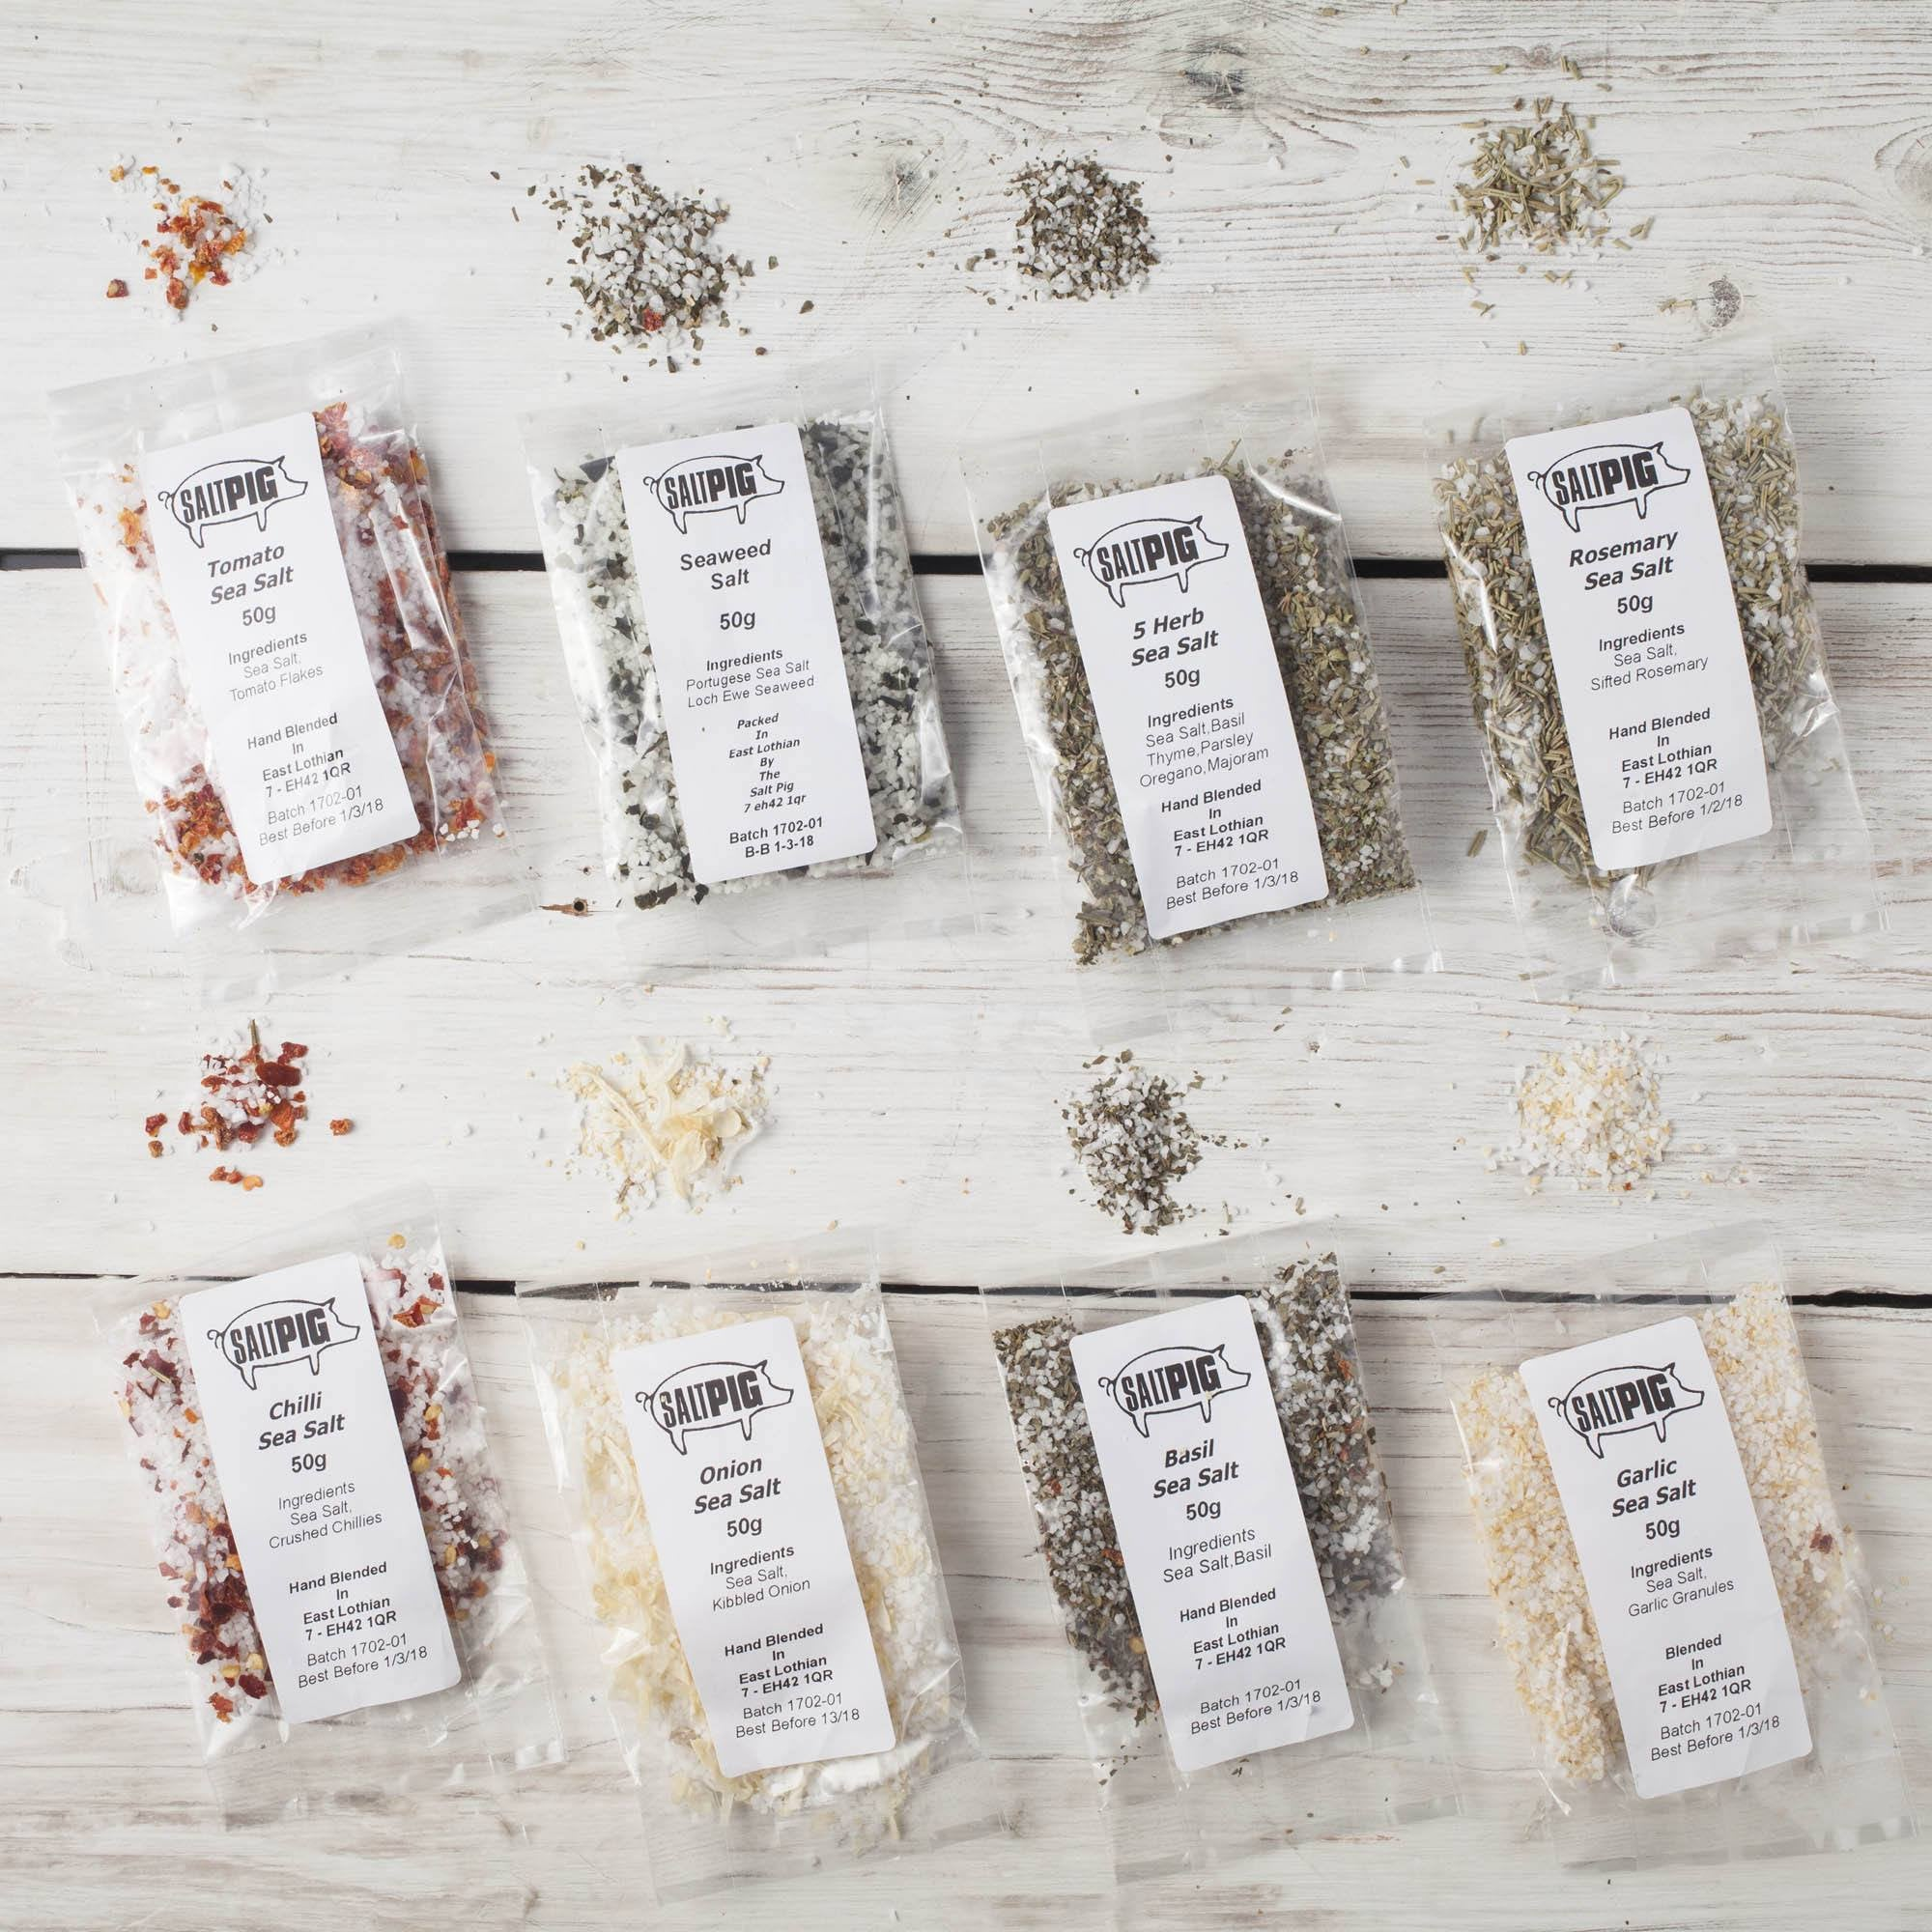 Flavoured Sea Salts Collection with 7 Flavoured Salts - Spice Kitchen - Spices, Spice Blends, Gifts & Cookware